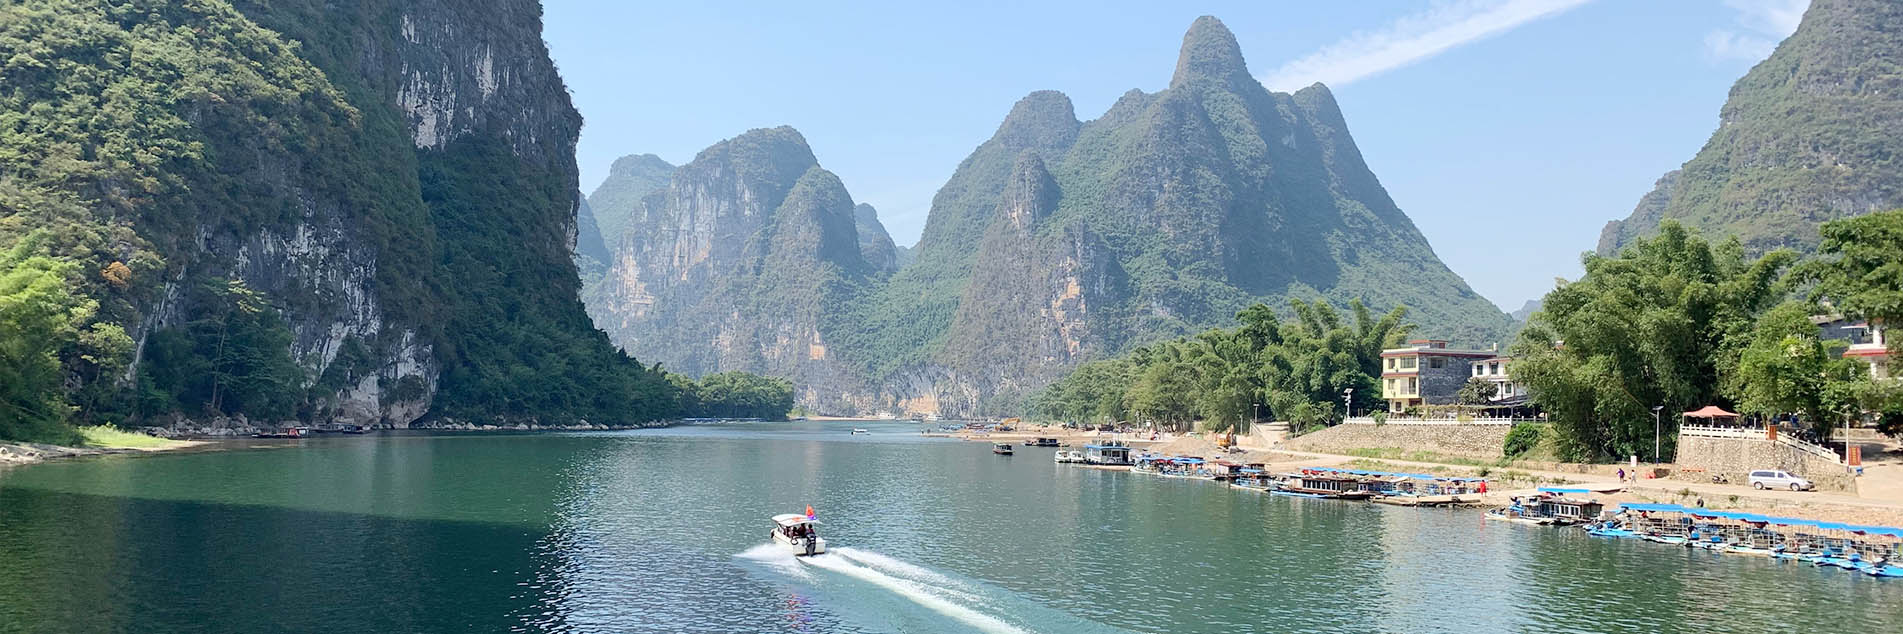 Guilin Travel Guide Attractions Weather Hotels Maps